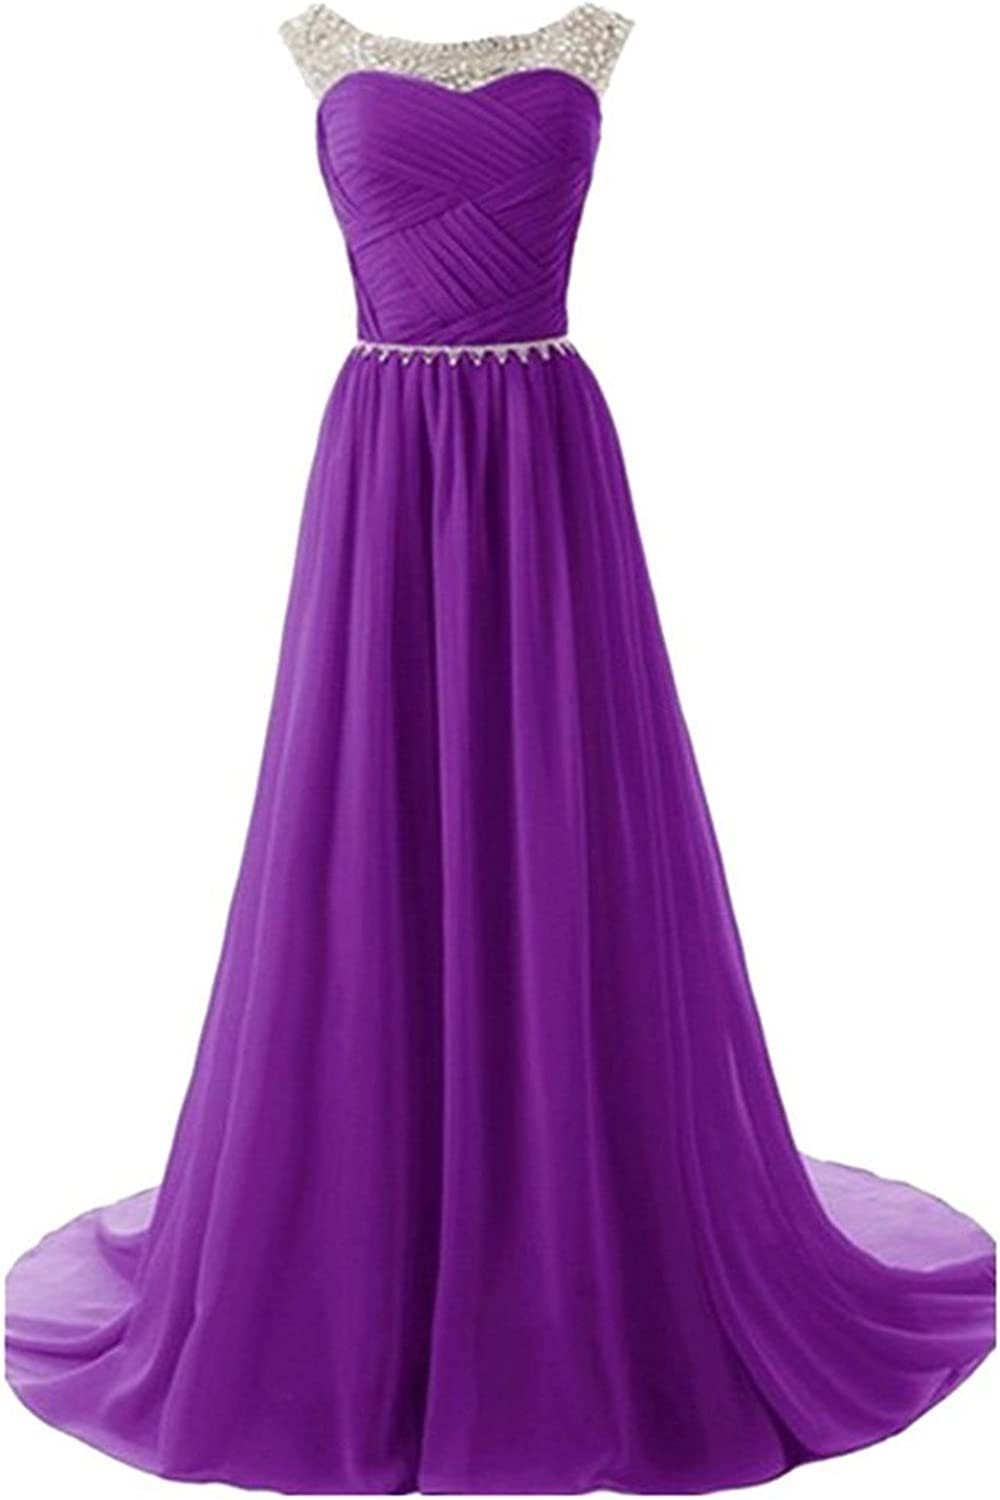 Tobyak Women's Long Party Prom Strapless Beaded Empire Line Evening Gown Dress Fashion Style